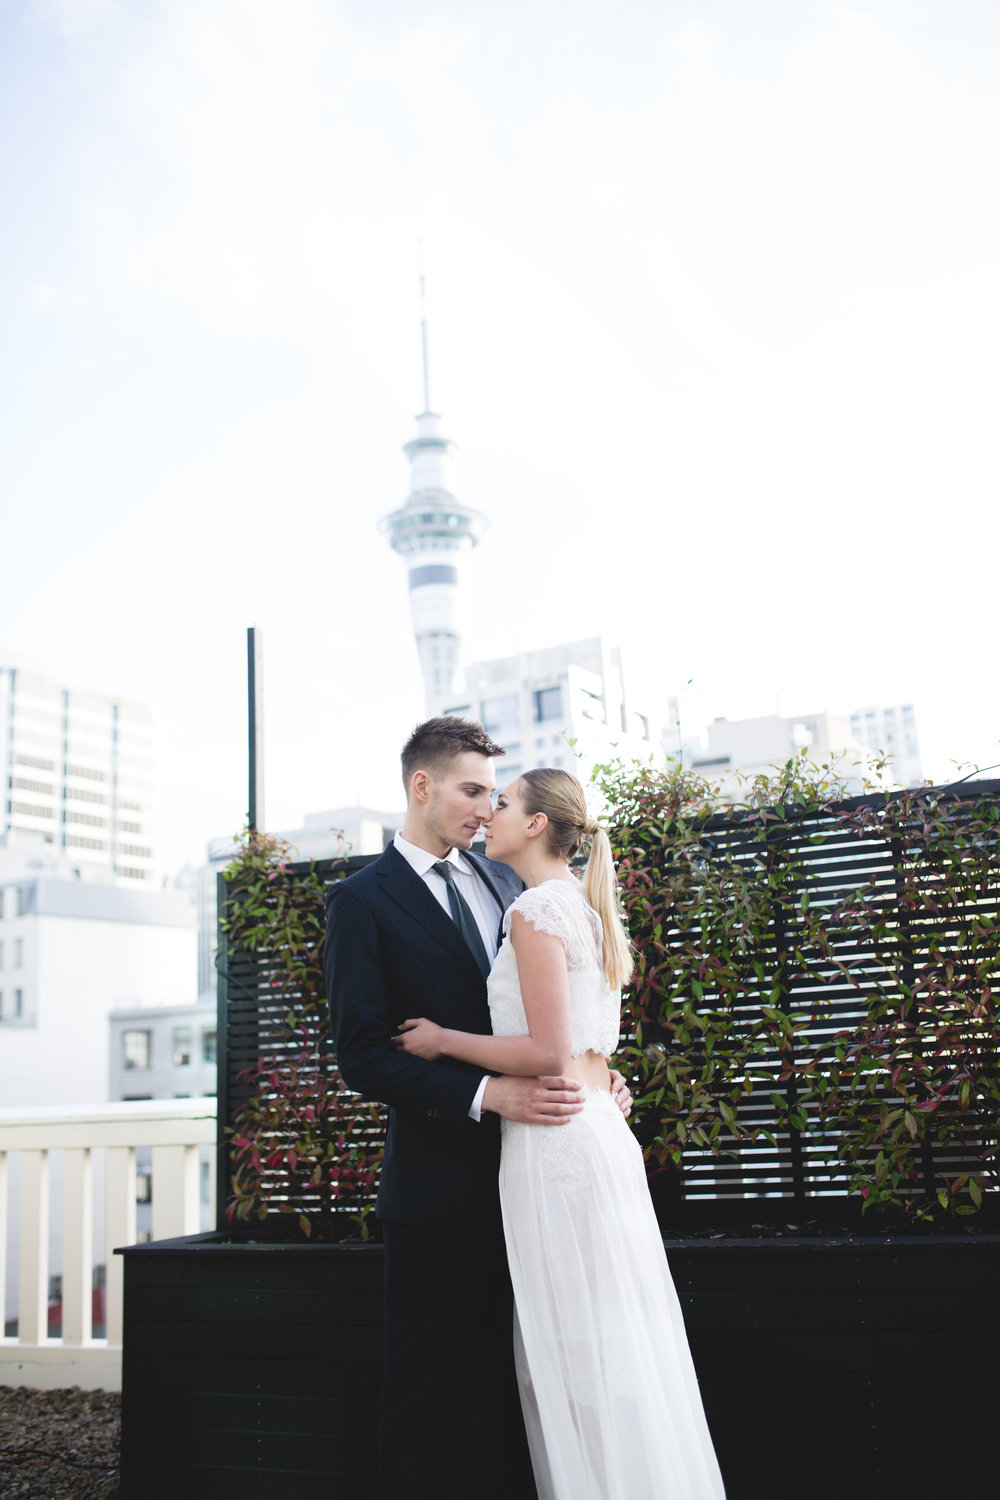 urban rooftop elopement -® Sweet Events Photography 2016 -147.jpg